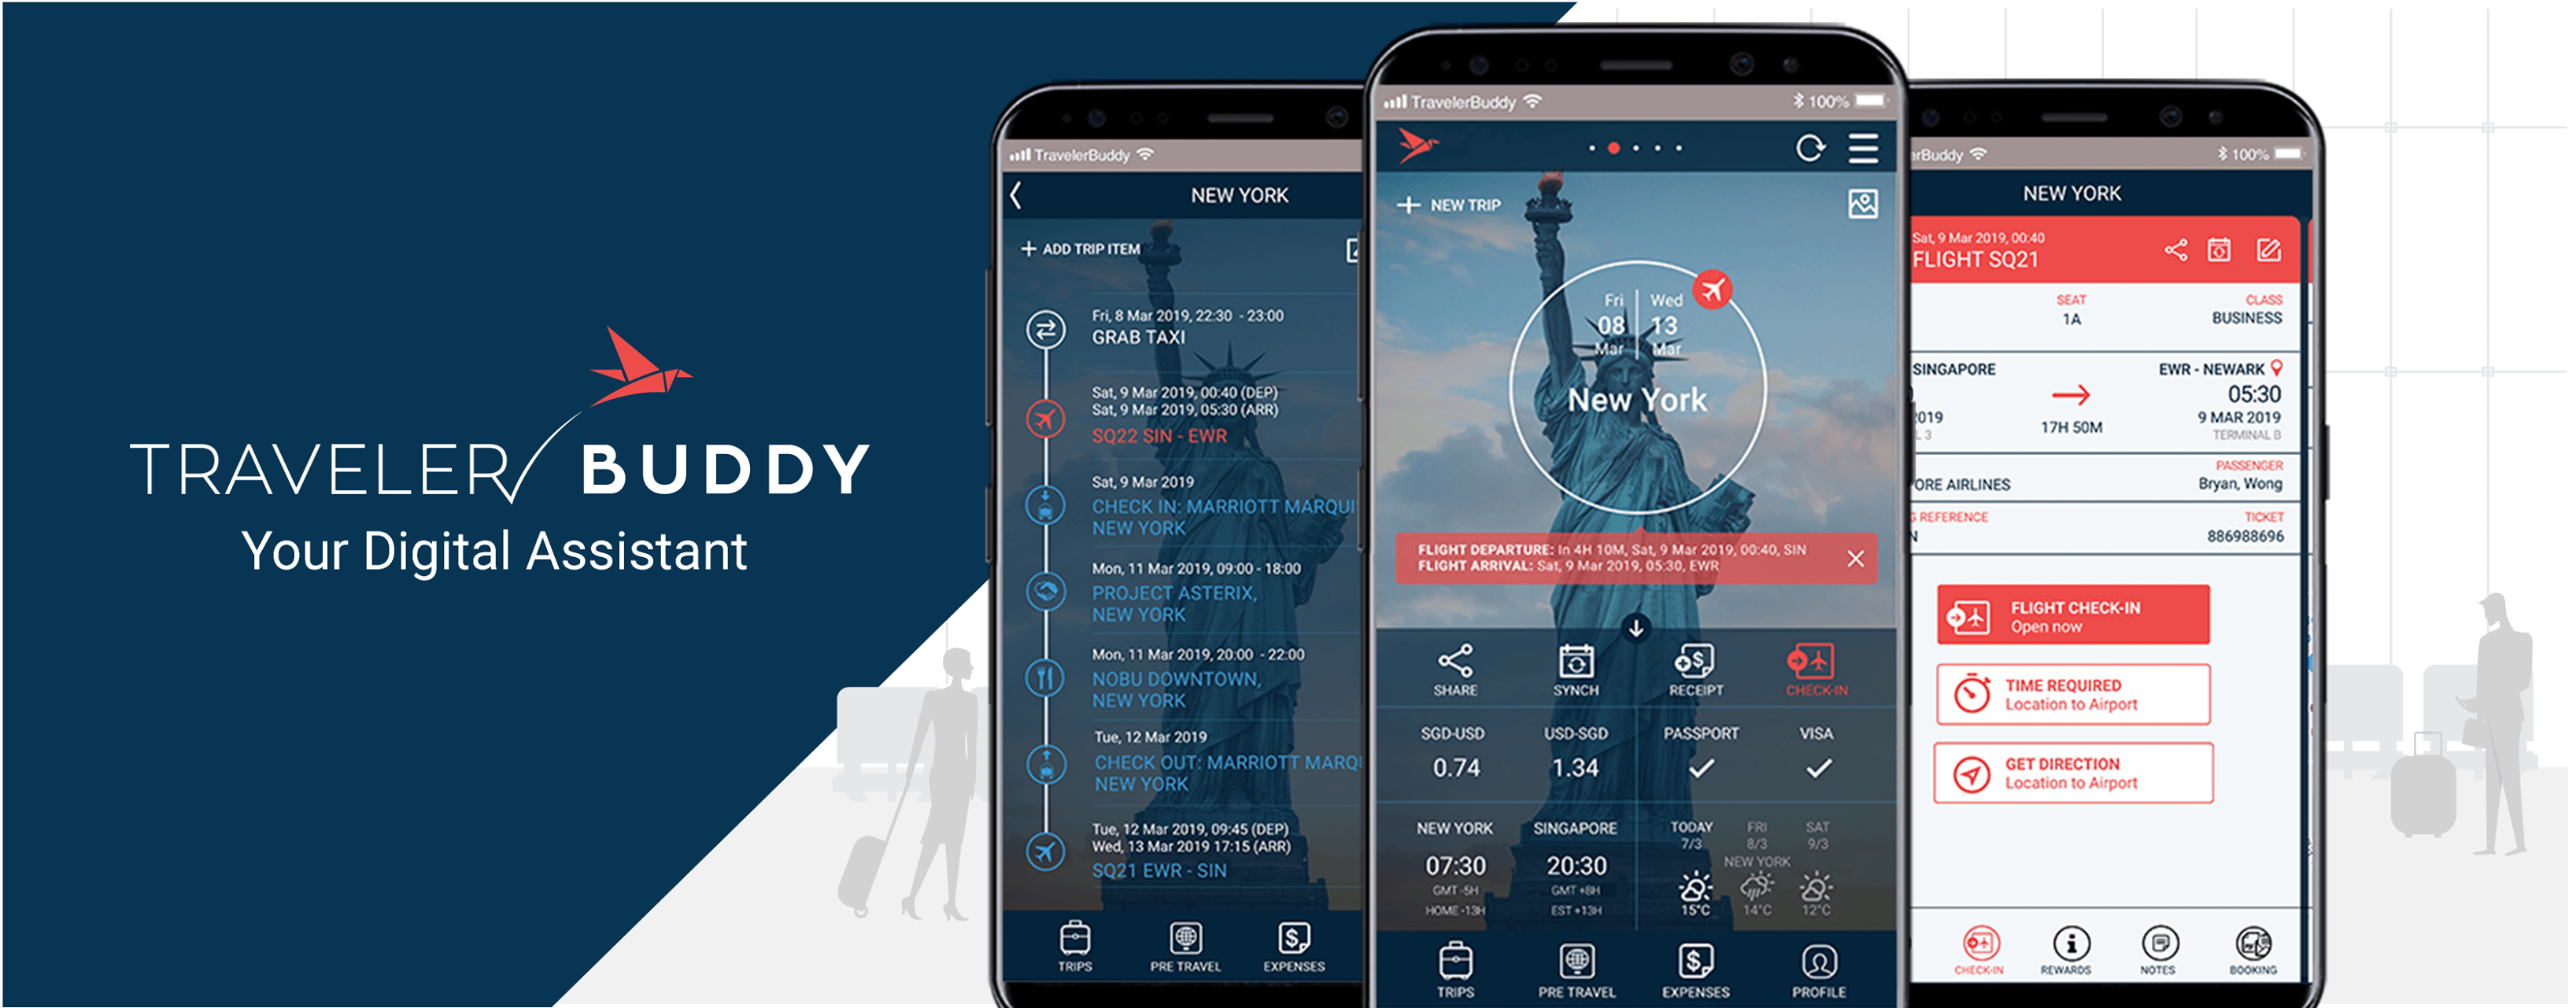 TravelerBuddy launches a new version of its all-in-one Travel App